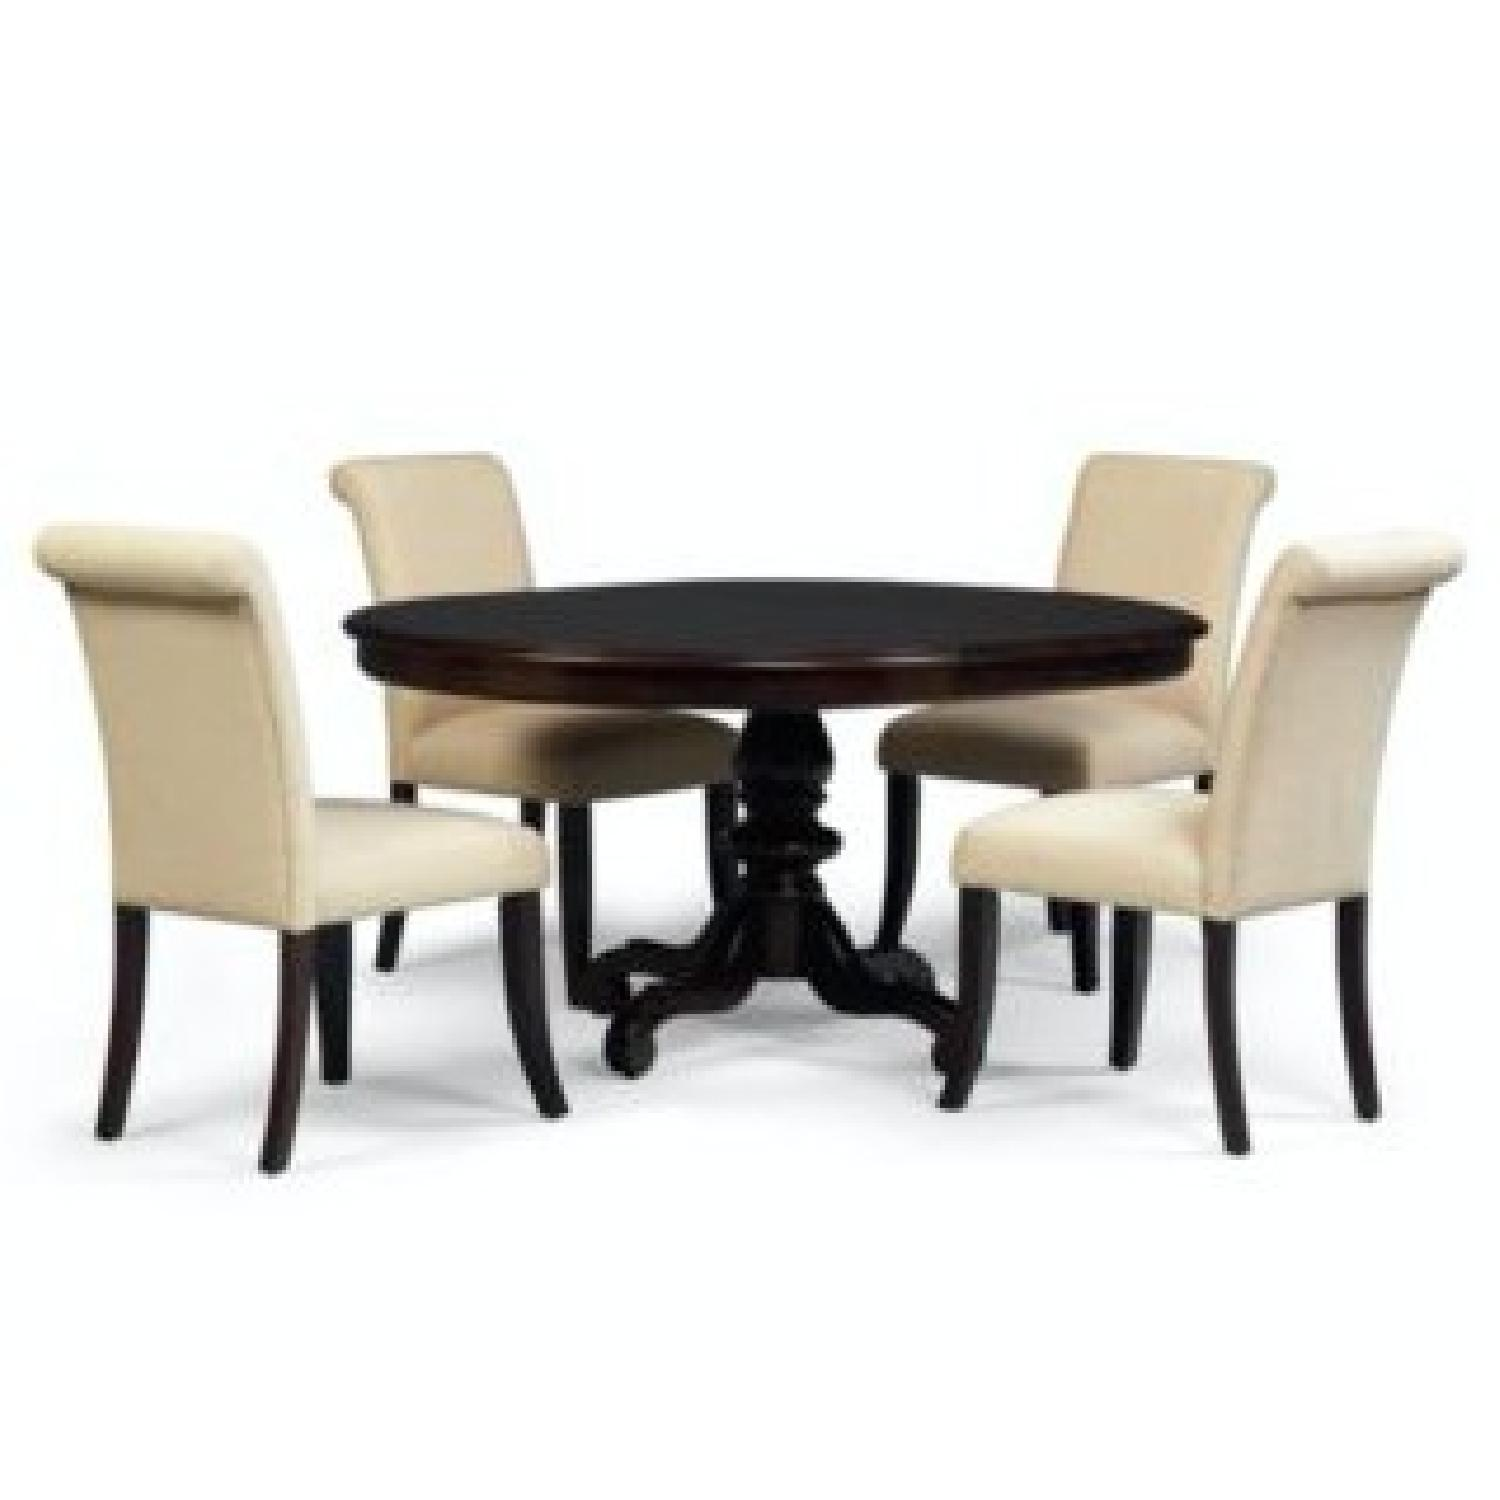 Macy S Bradford Round Dining Table W 6 Upholstered Chairs Aptdeco